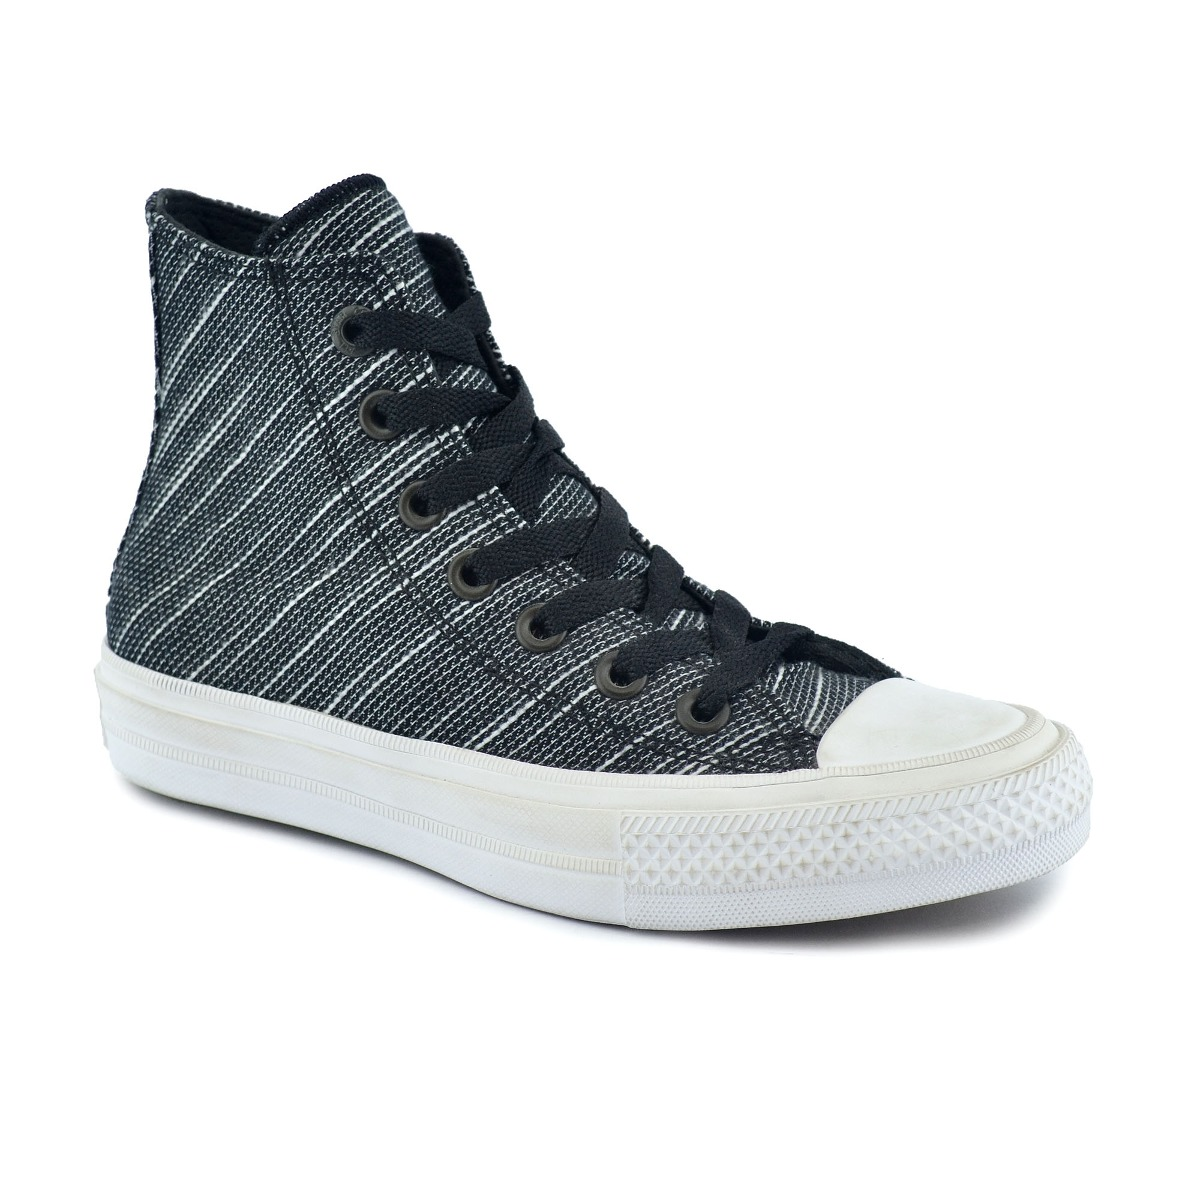 converse altas mujer grises